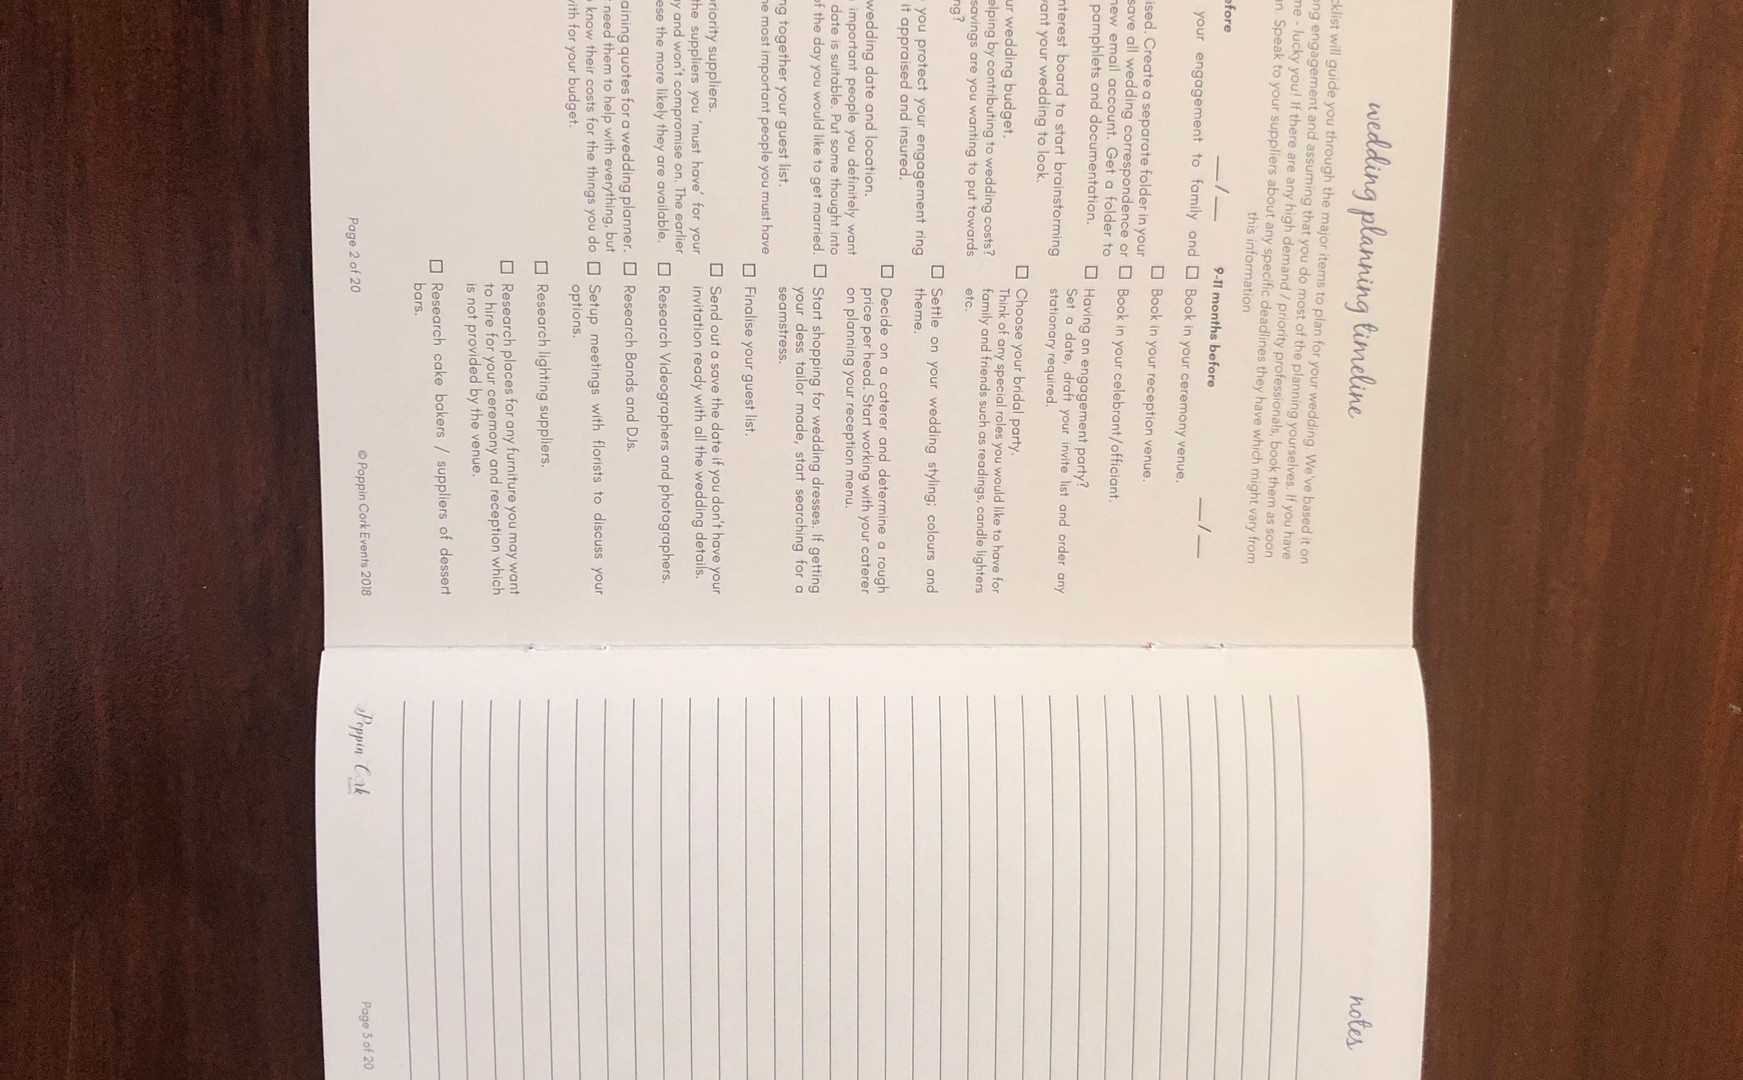 Wedding Planning Checklist Booklet - internal pages